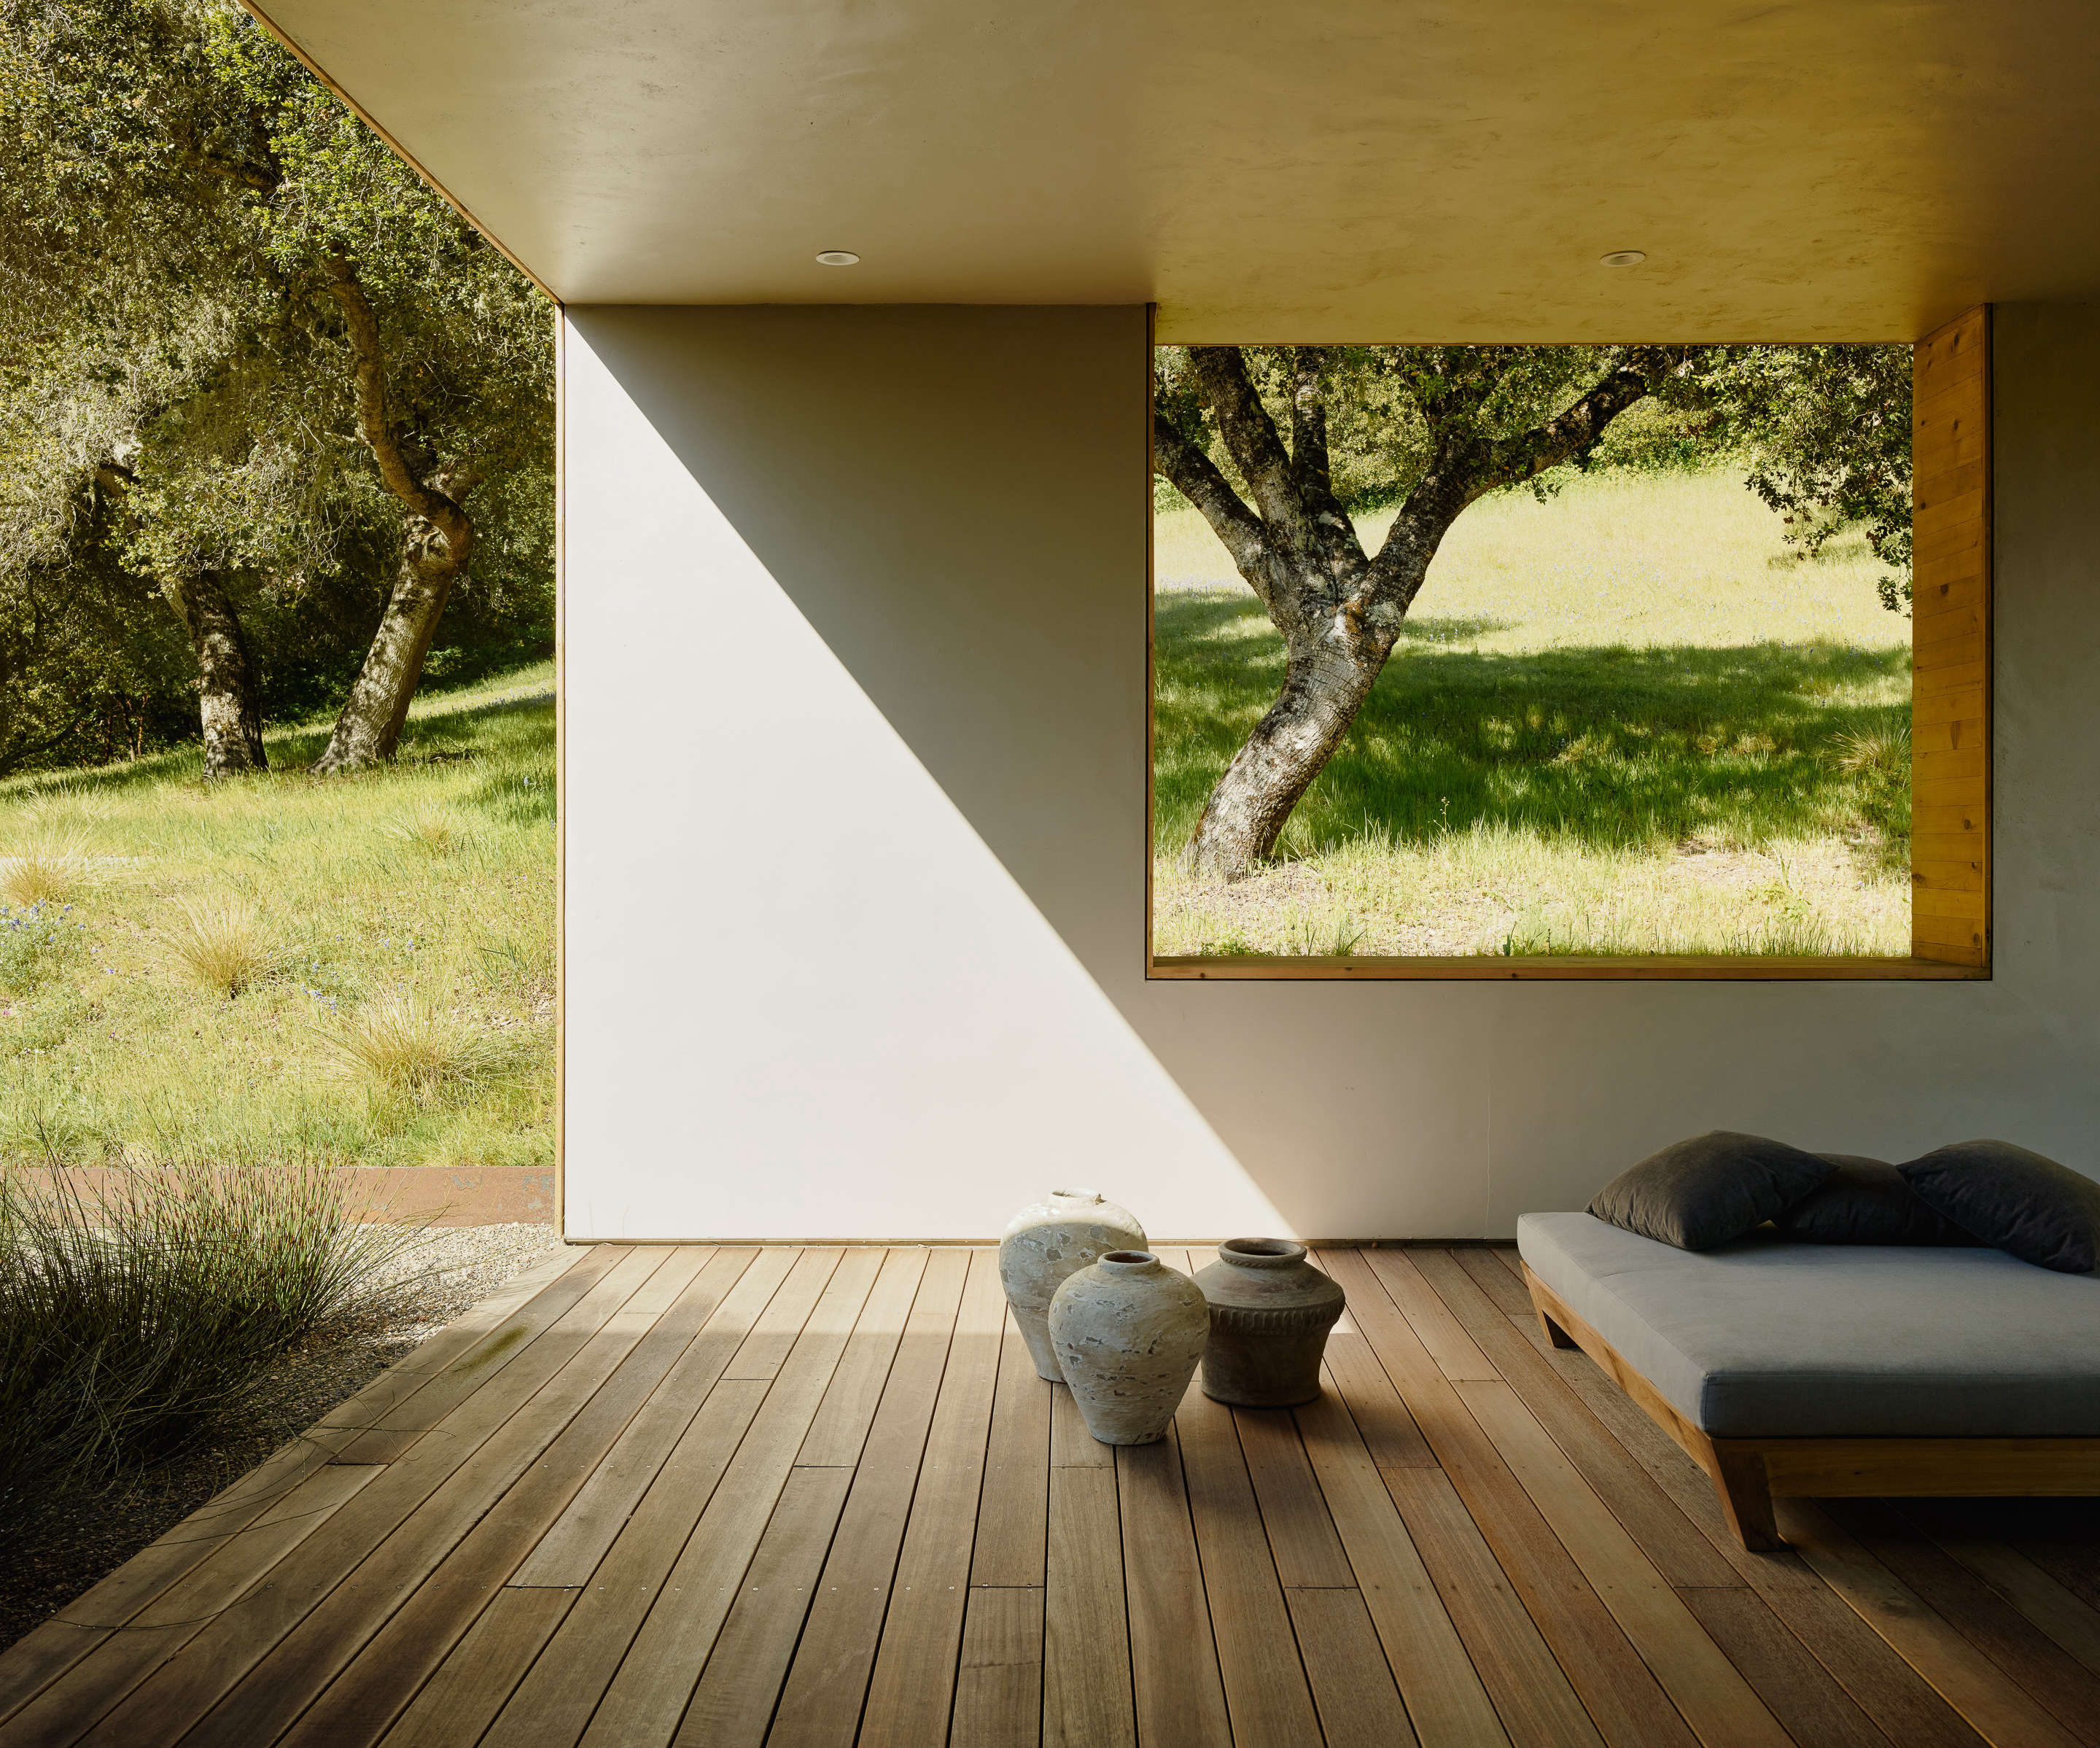 Landscape Architect Visit: The California Life, Outdoor ... on Outdoor Living And Landscapes id=48923